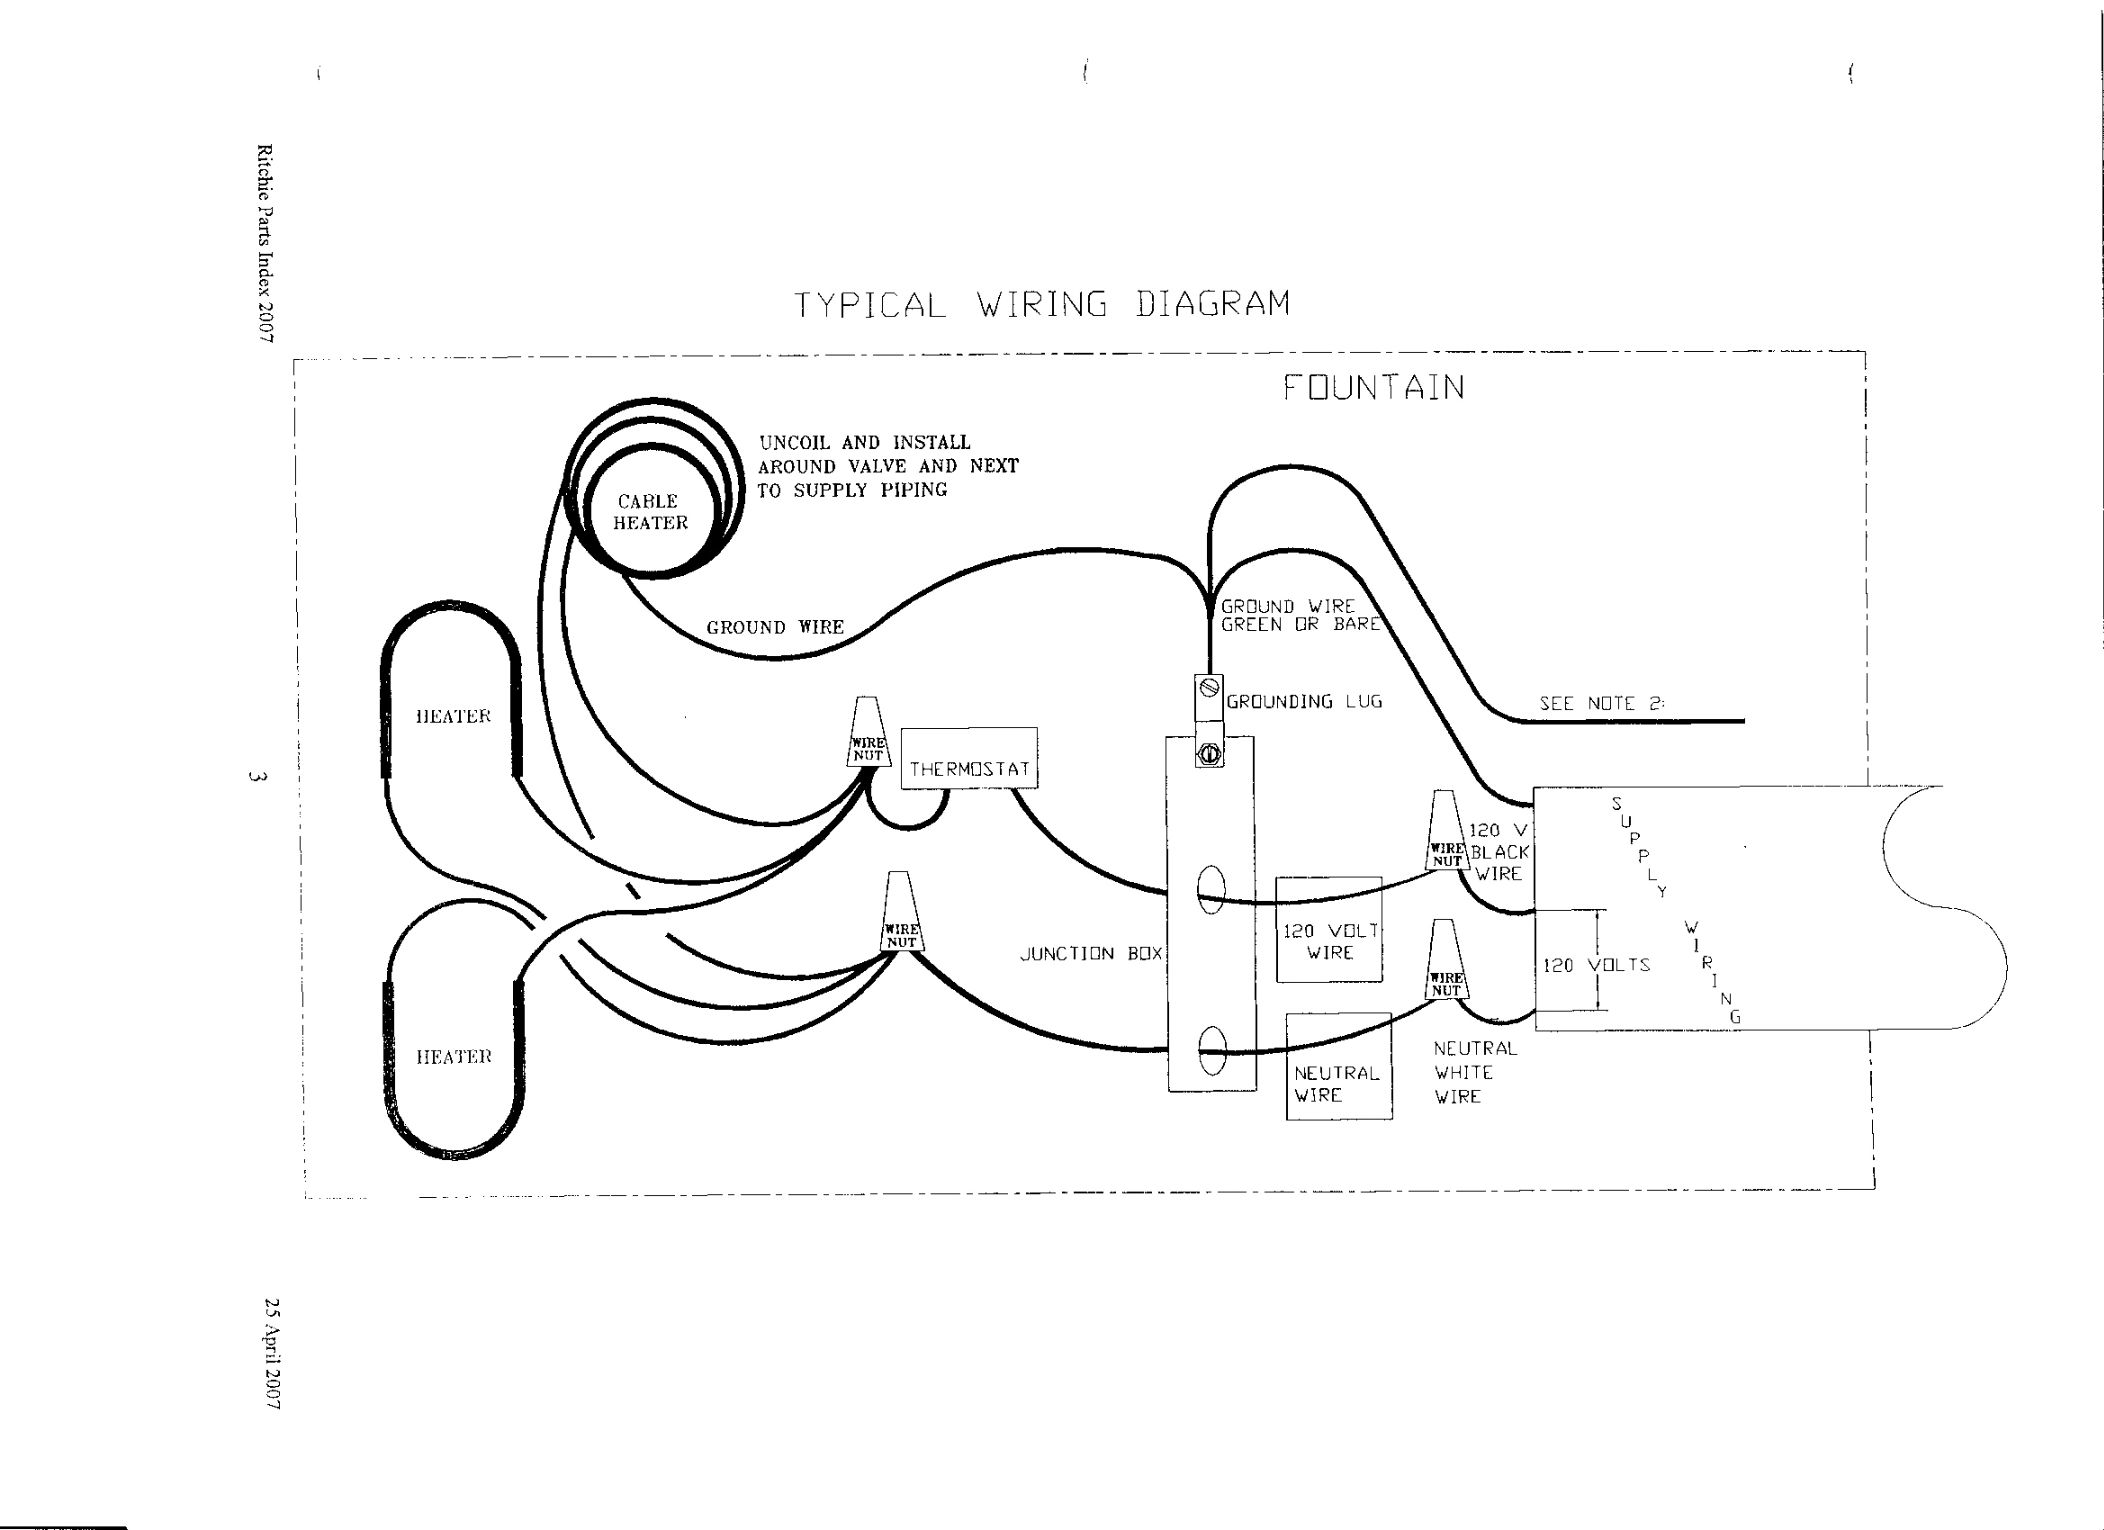 ritchie 3e wiring diagram   25 wiring diagram images